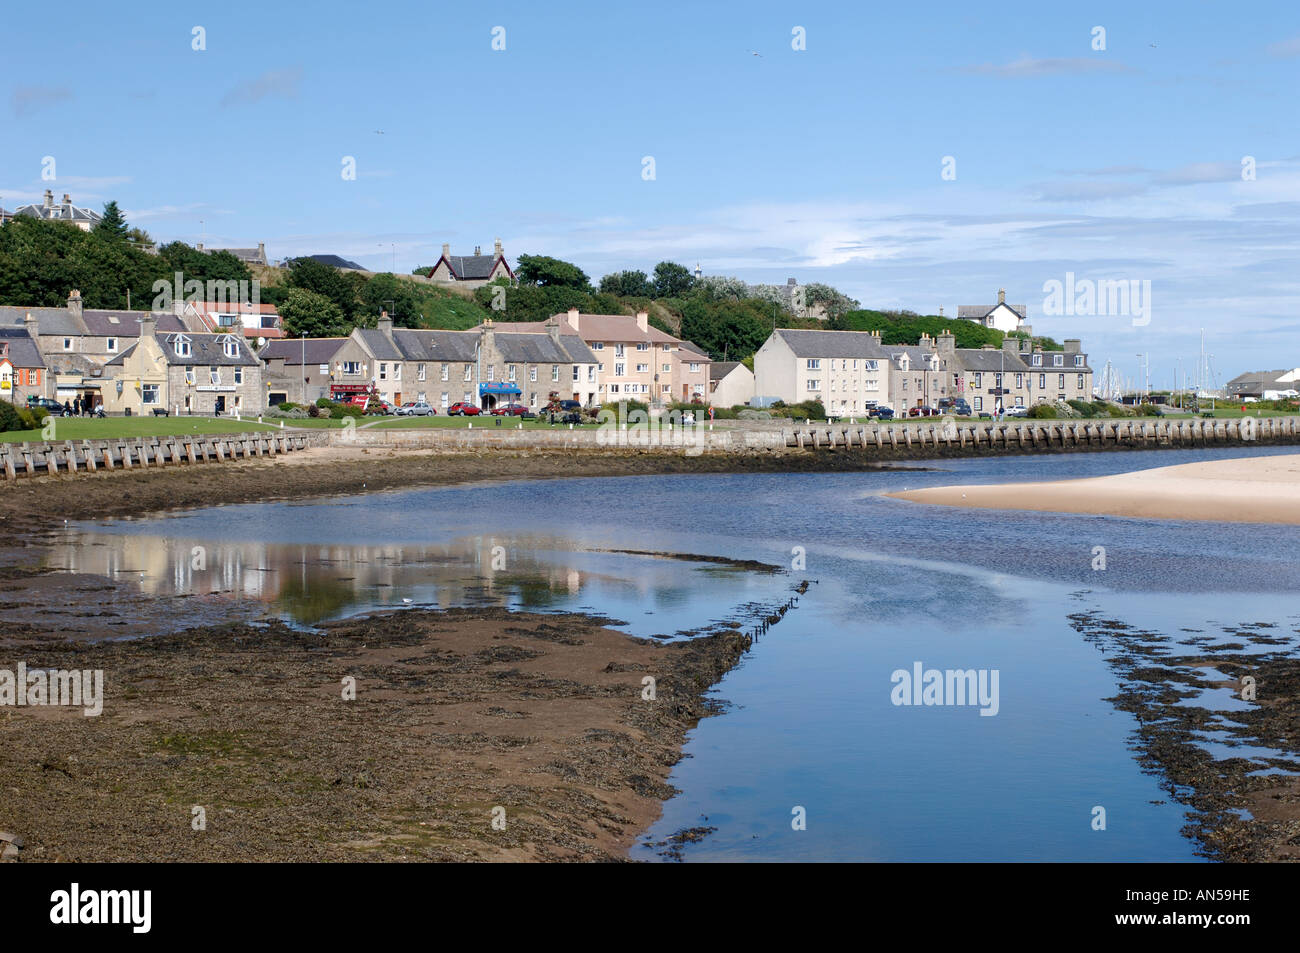 Lossiemouth seafront town from the River Lossie, Morayshire.  XPL 3226-321 - Stock Image